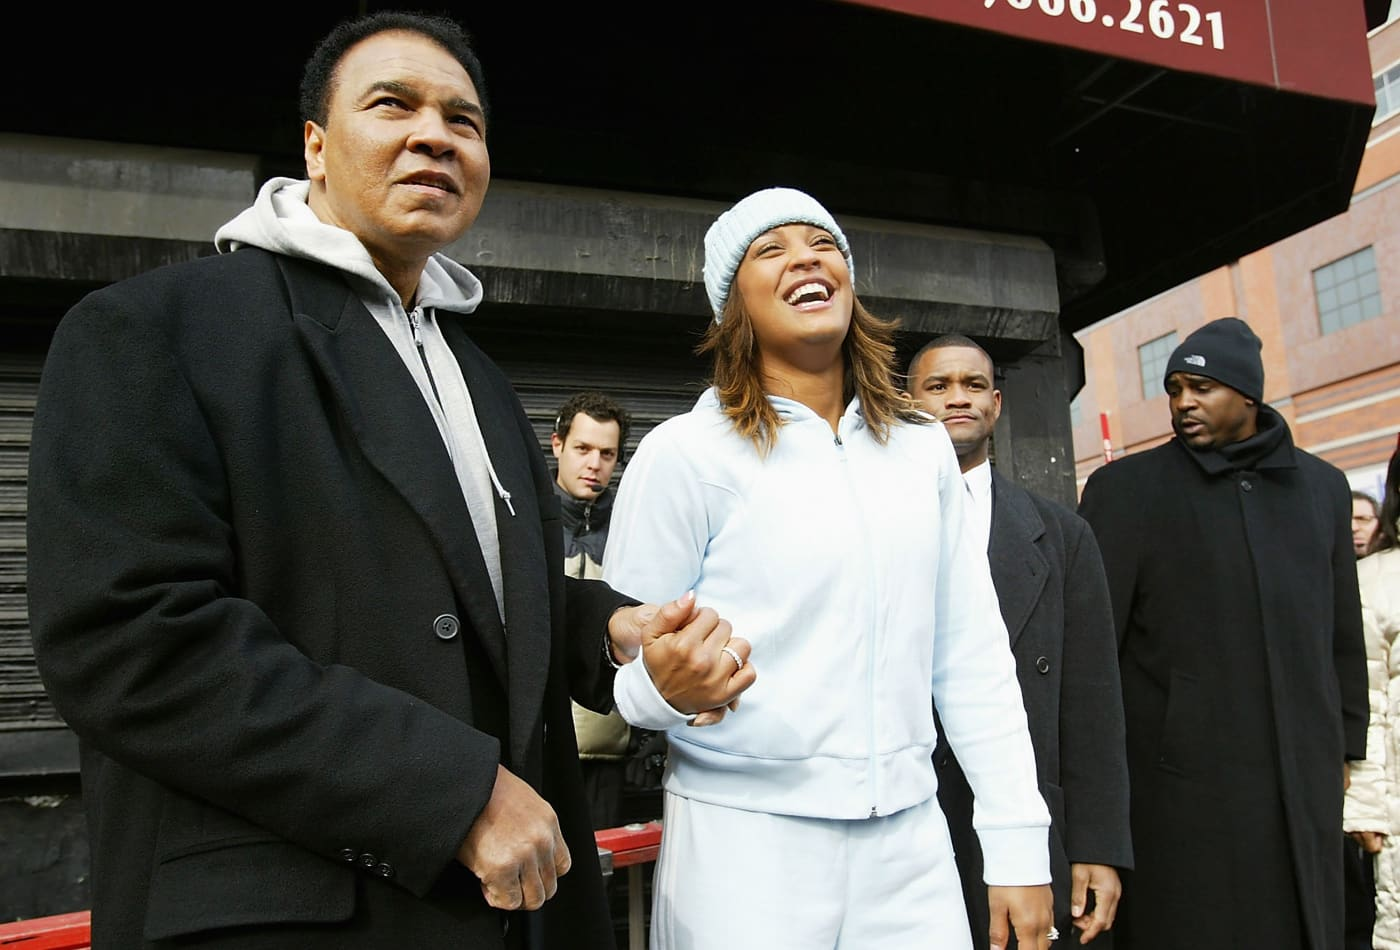 Why Laila Ali worked a minimum wage job and drove a $400 car as a teen, despite her father's success